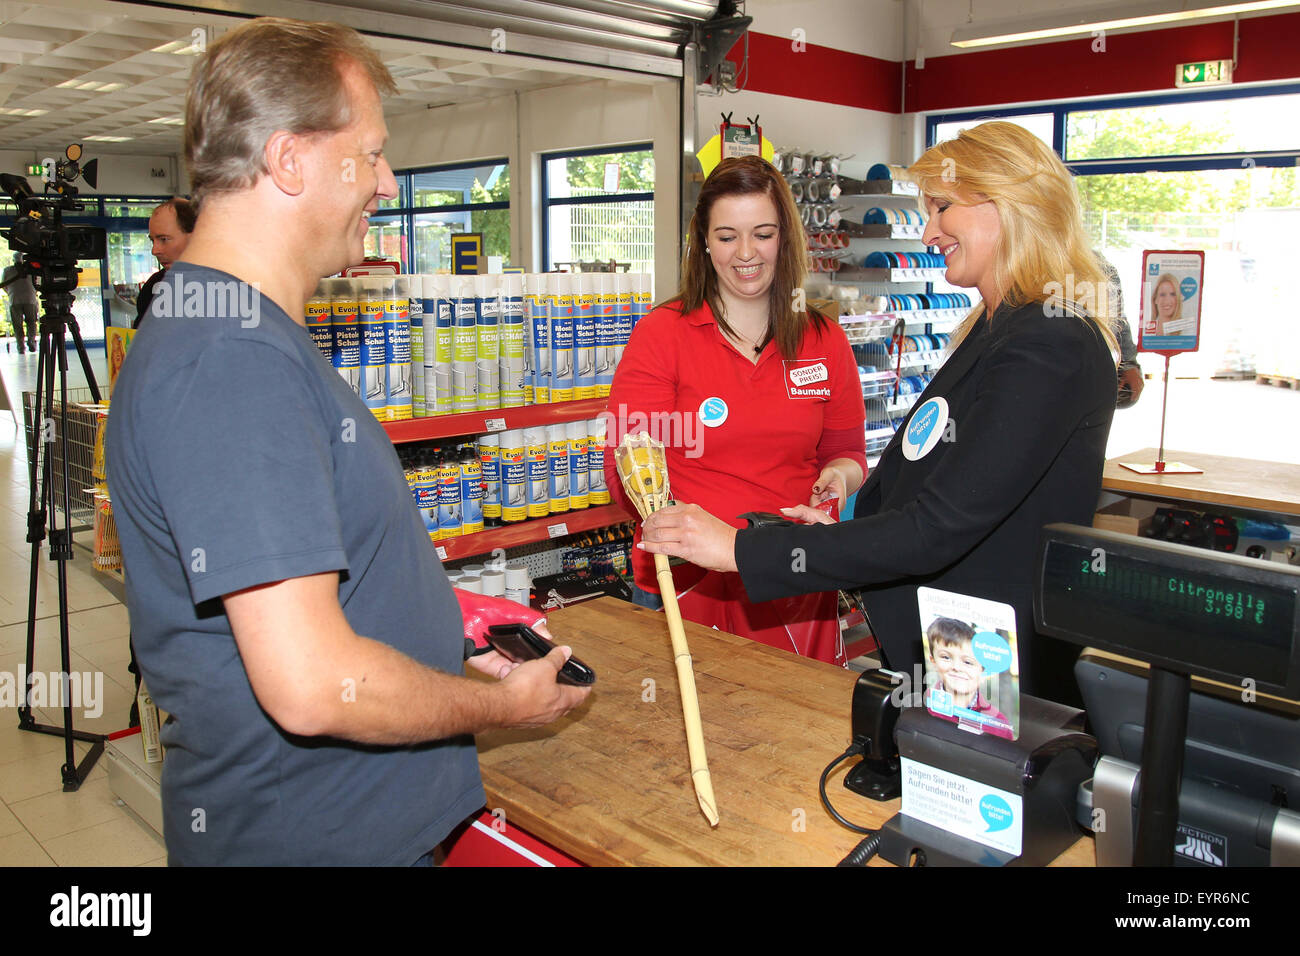 Claudia Kleinert behind the counter during 'Woche des Aufrundens' by children's charity Deutschland - Stock Image